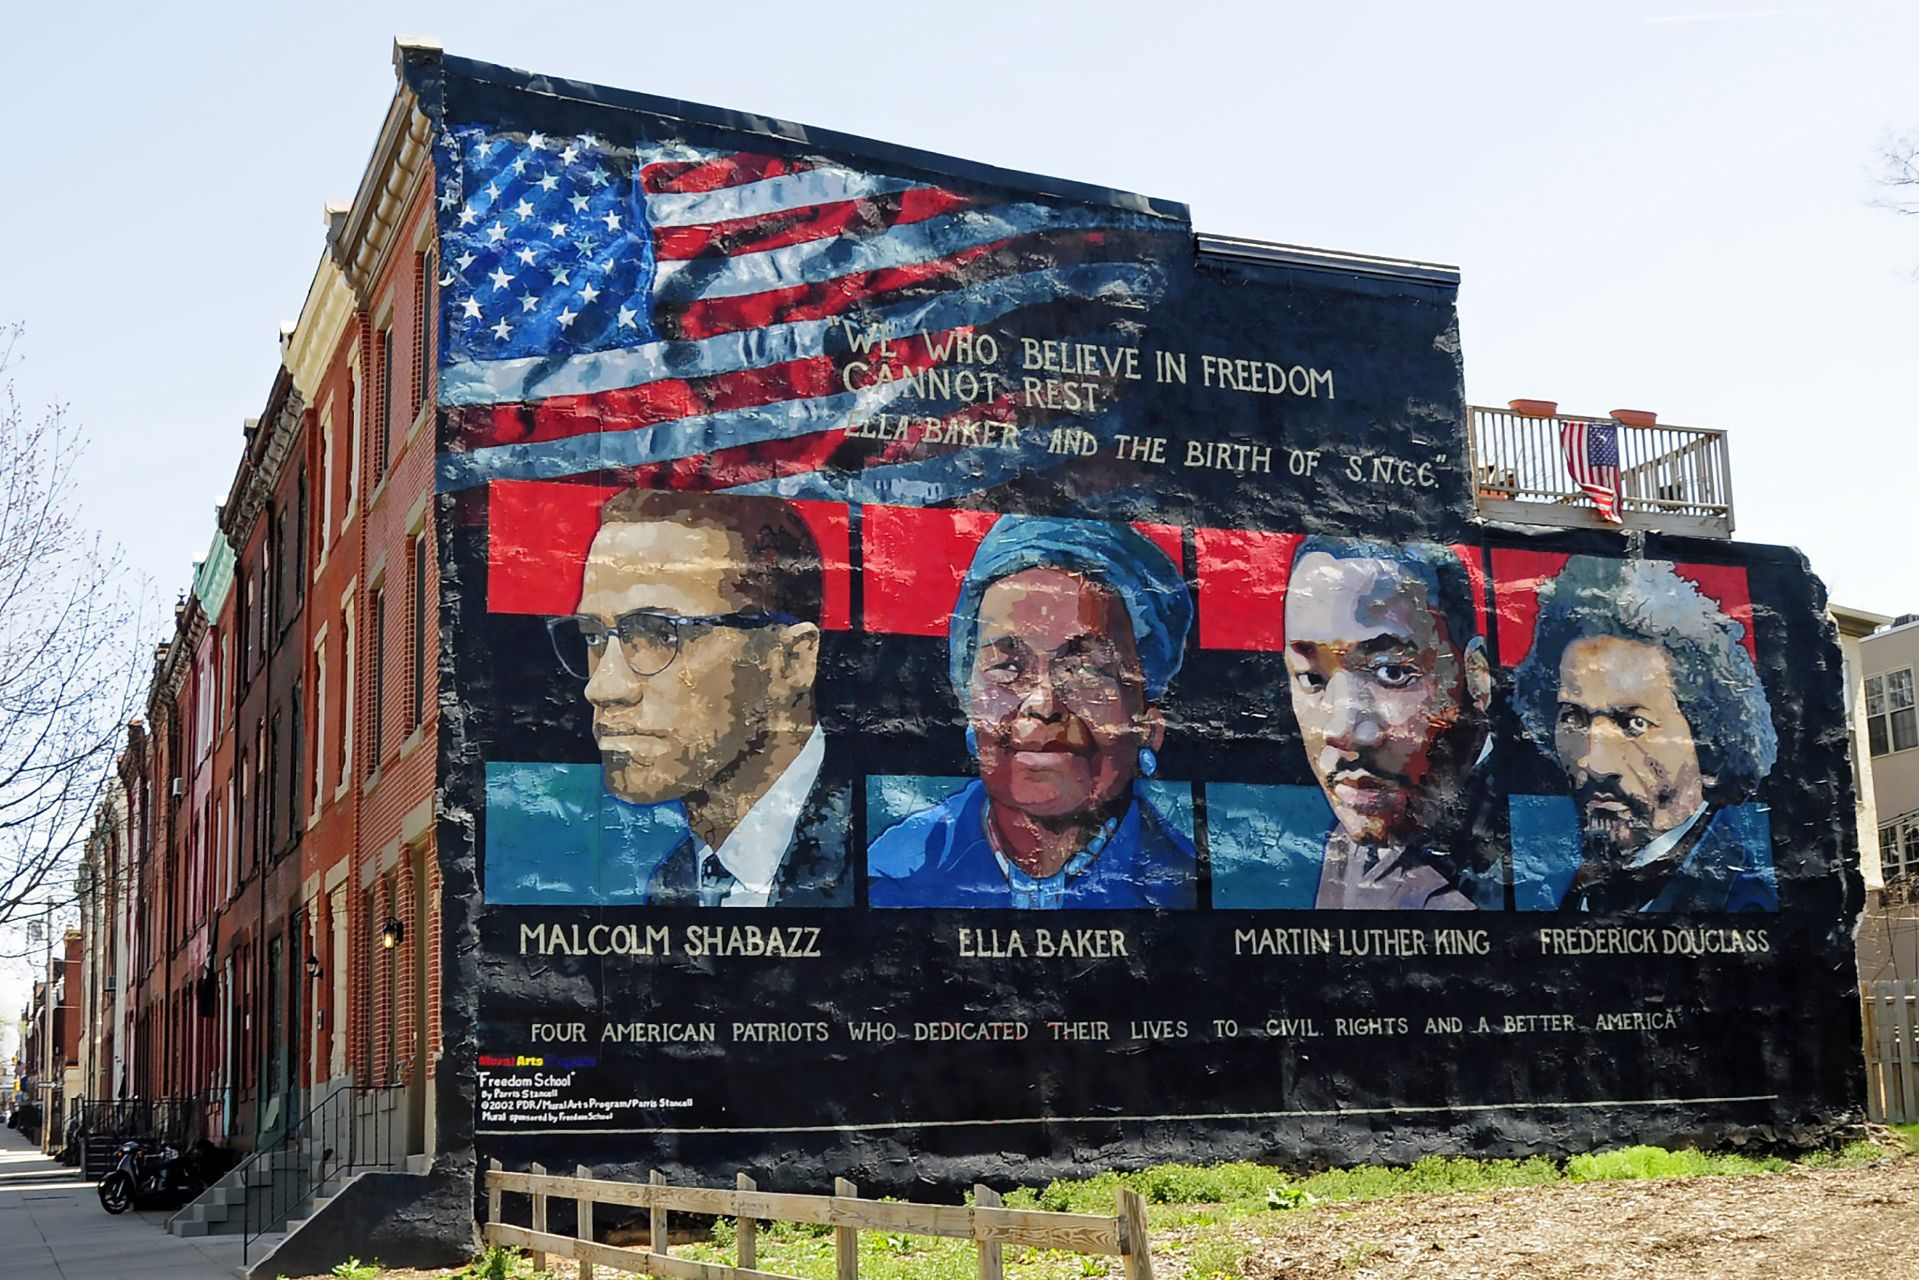 """A mural on the wall of row houses in Philadelphia depicts, from left, Malcolm X, Ella Baker, Martin Luther King Jr., and Frederick Douglass. The quote, """"We who believe in freedom cannot rest,"""" is from Ella Baker. The mural artist is Parris Stancell. (Tony Fischer [CC BY 2.0 https://creativecommons.org/licenses/by/2.)], via Wikimedia Commons)"""